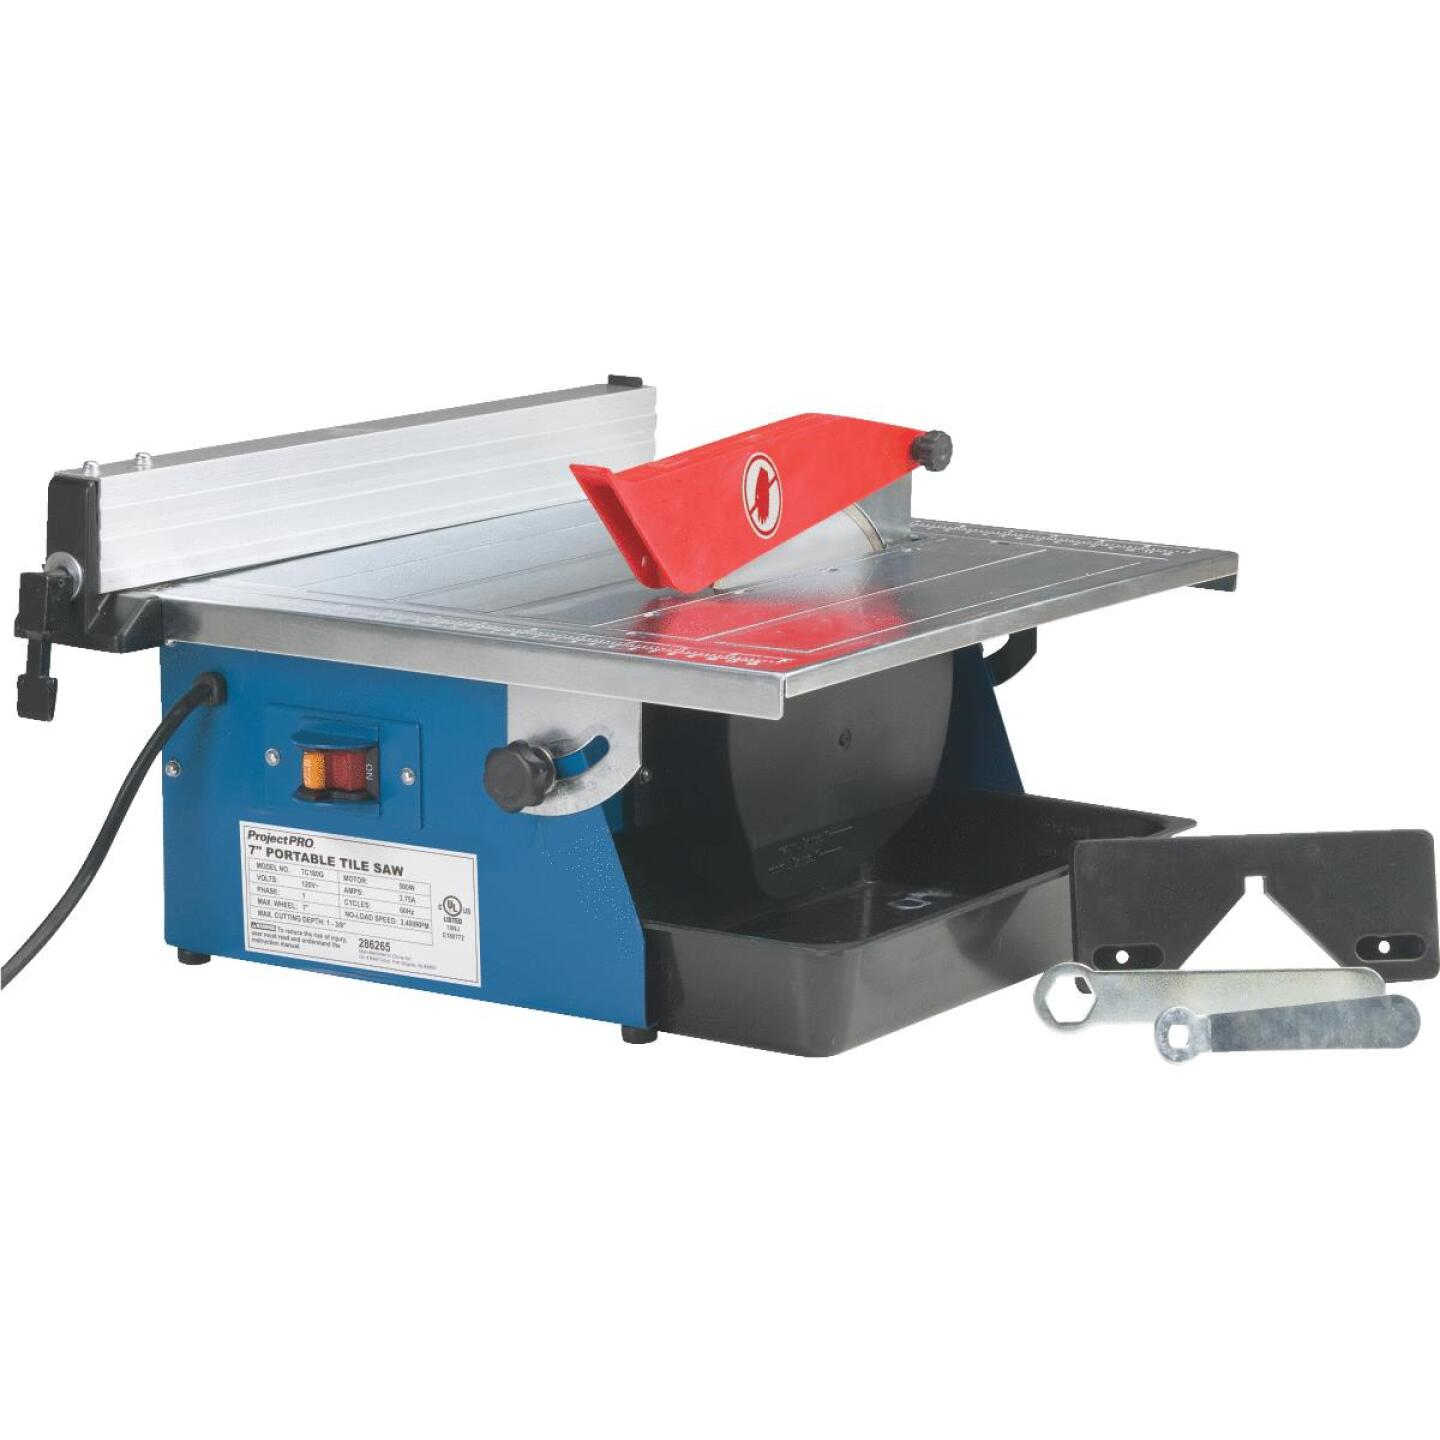 Project Pro 7 In. Portable Tile Saw Image 8